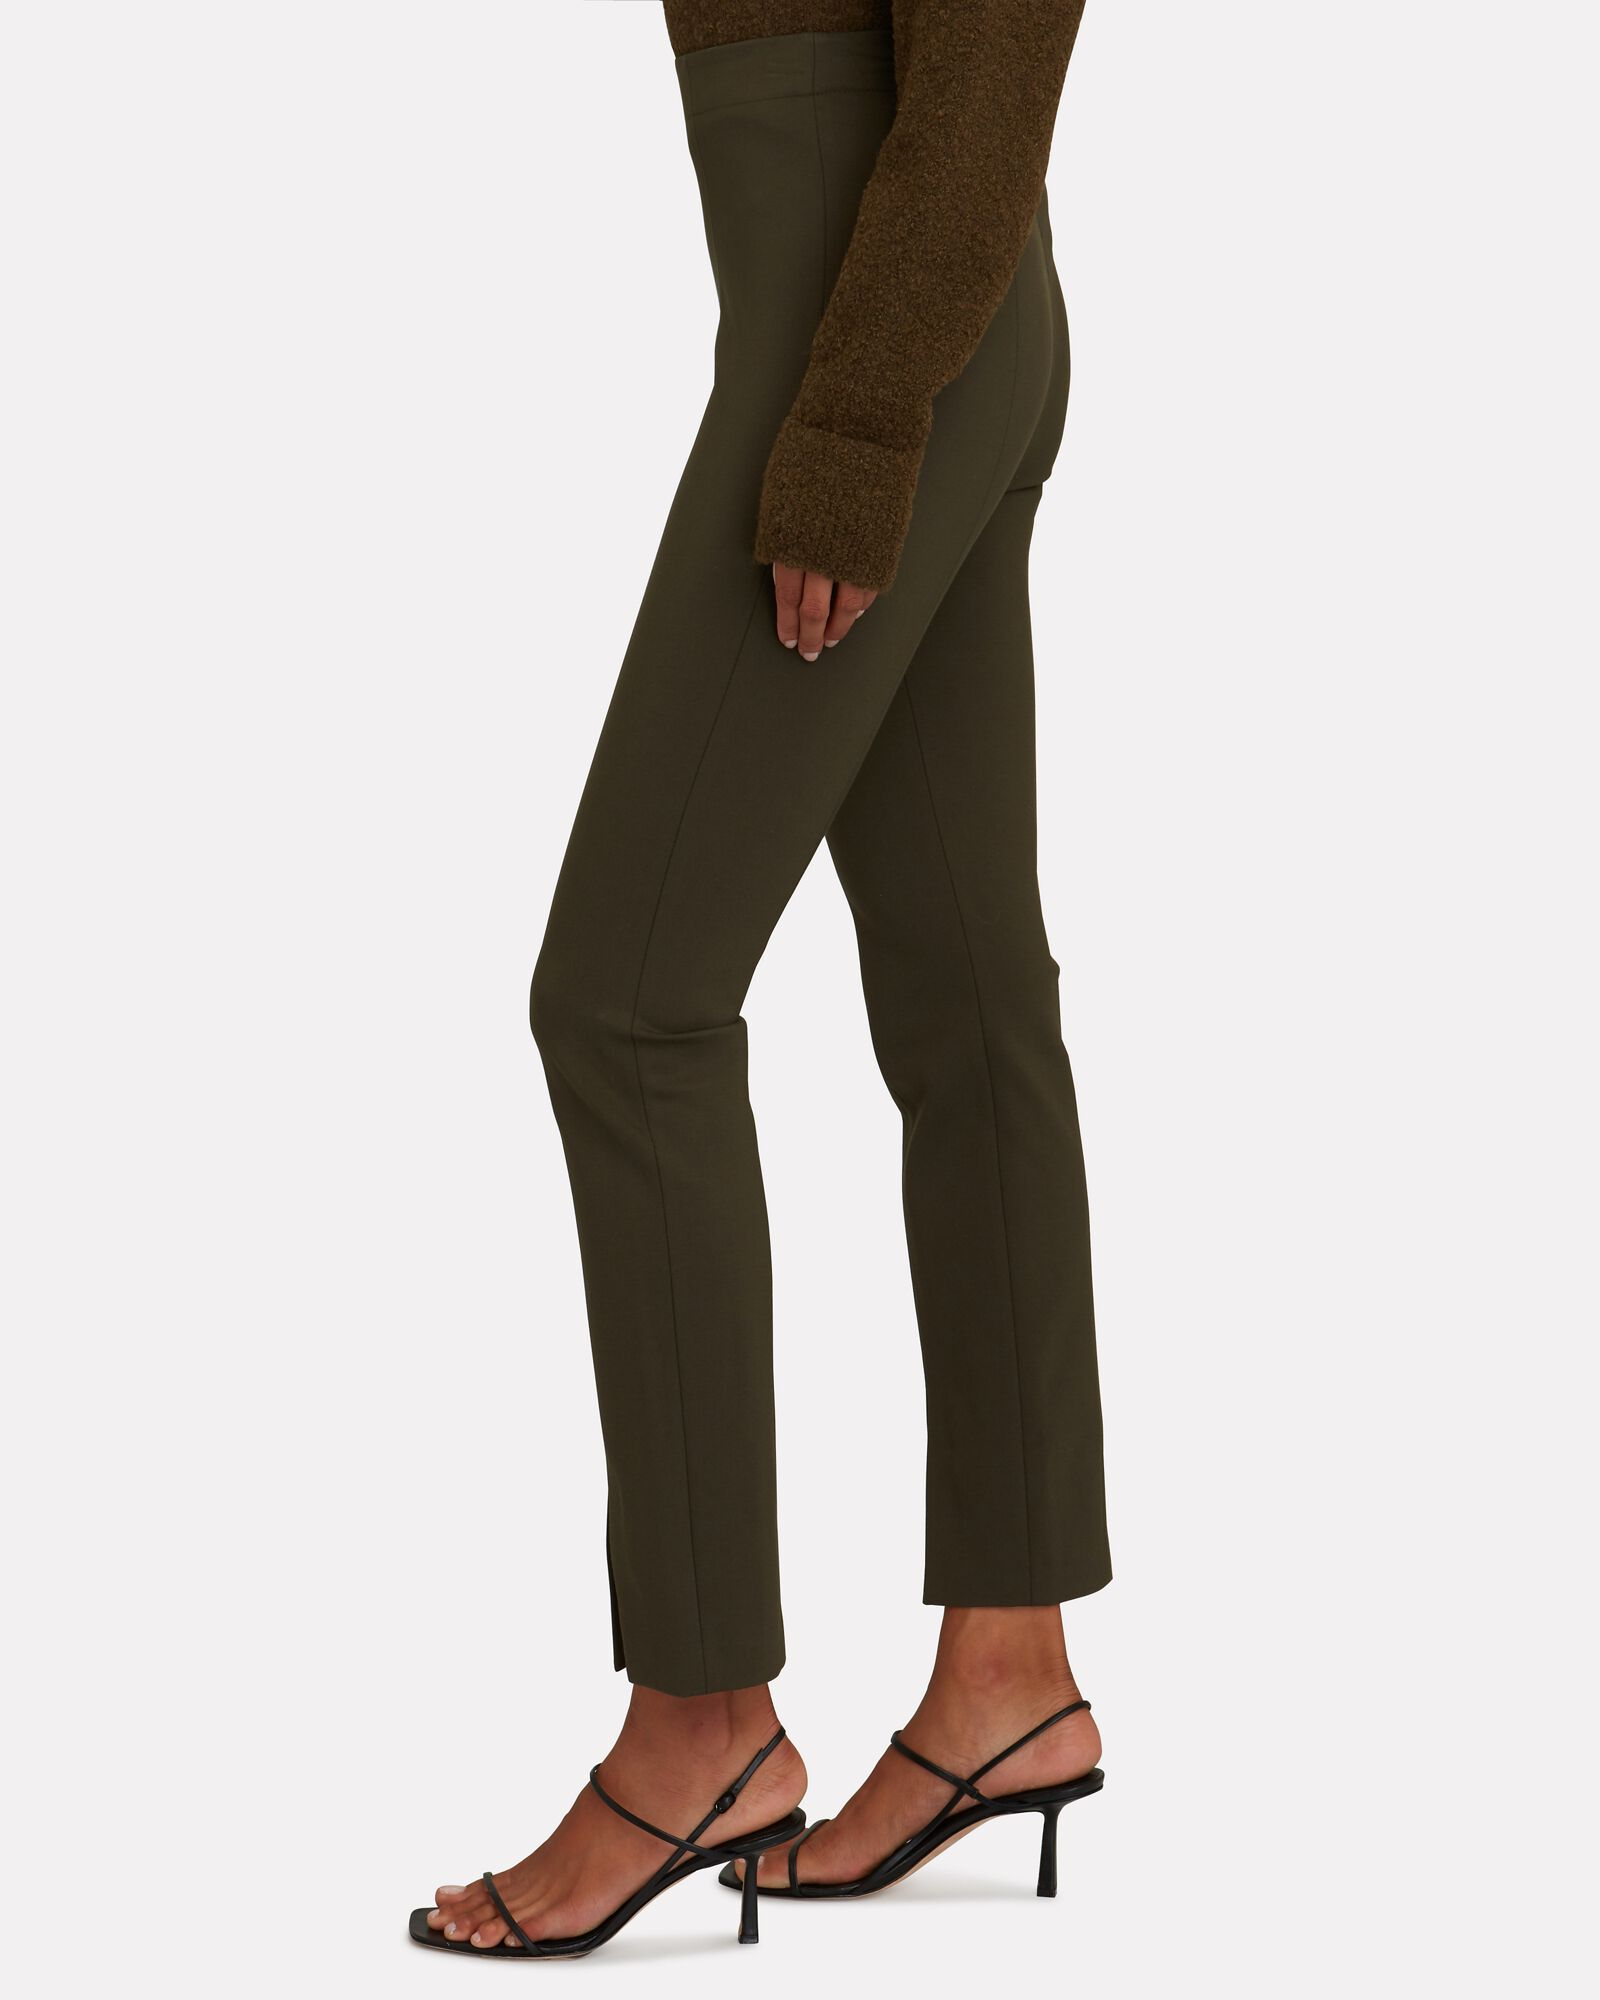 Bond Stretch Knit Leggings, GREEN, hi-res